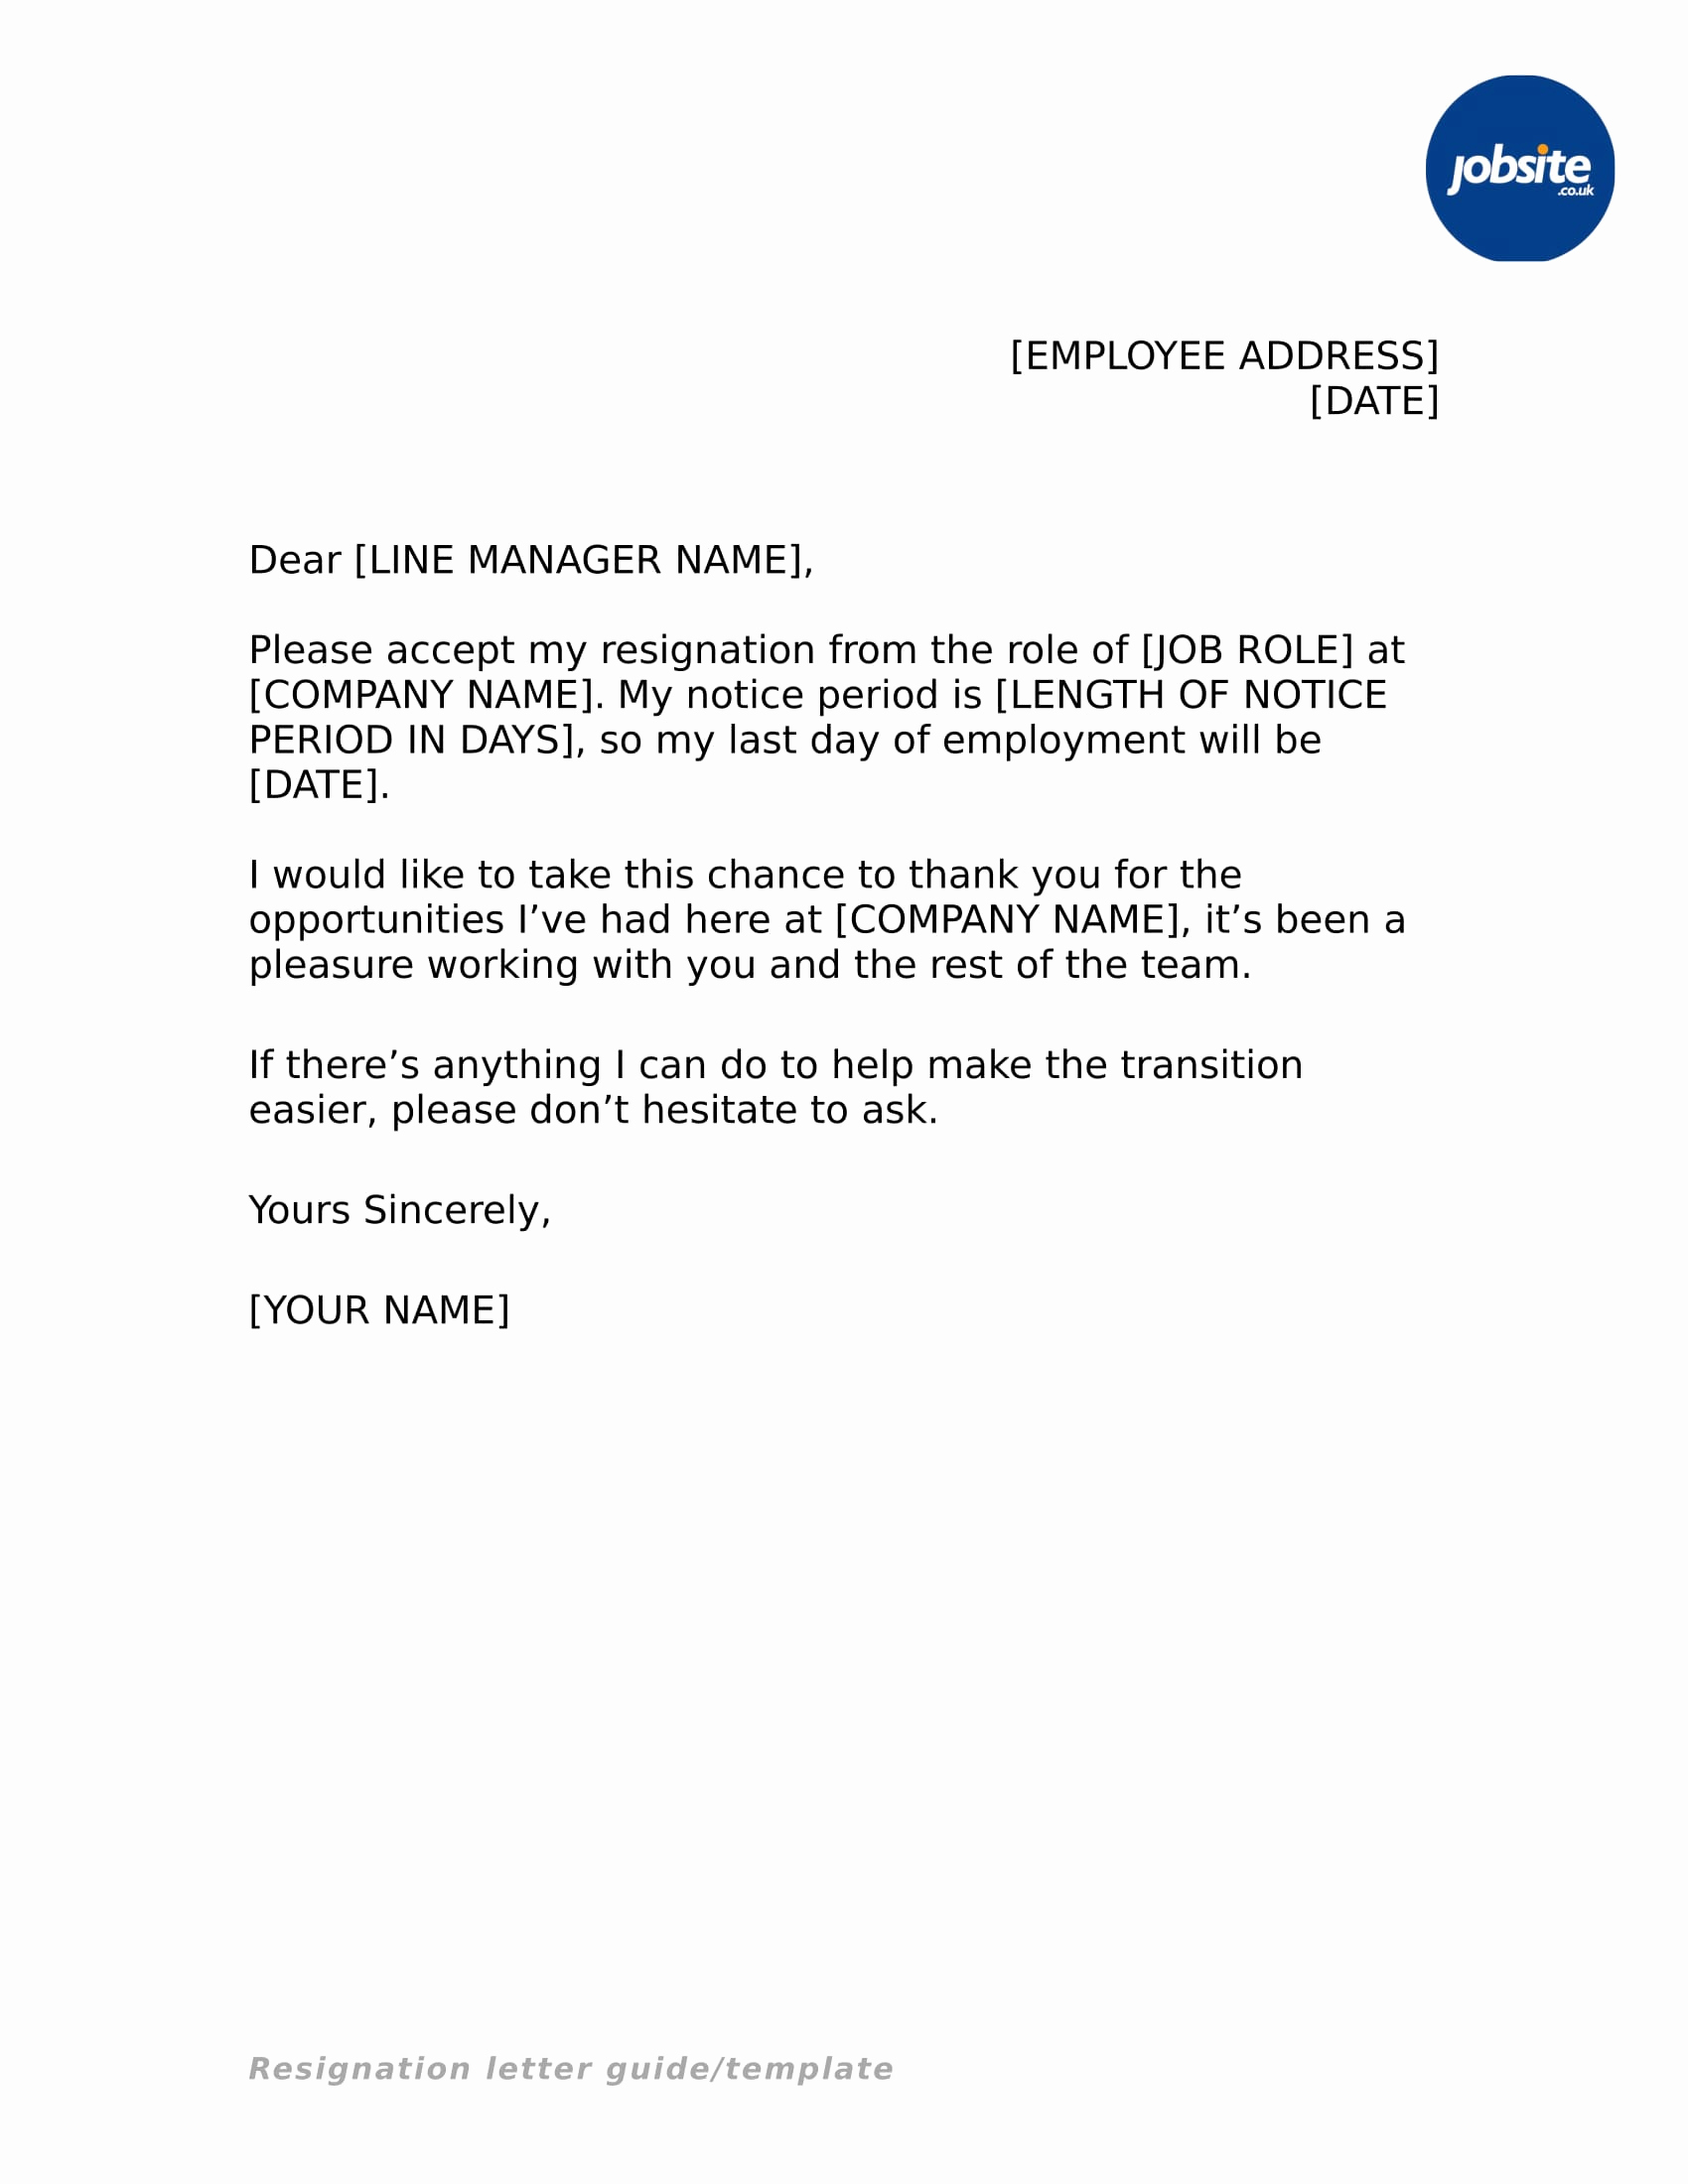 Letter Of Resignation Templates Word Unique 25 Simple Resignation Letter Examples Pdf Word